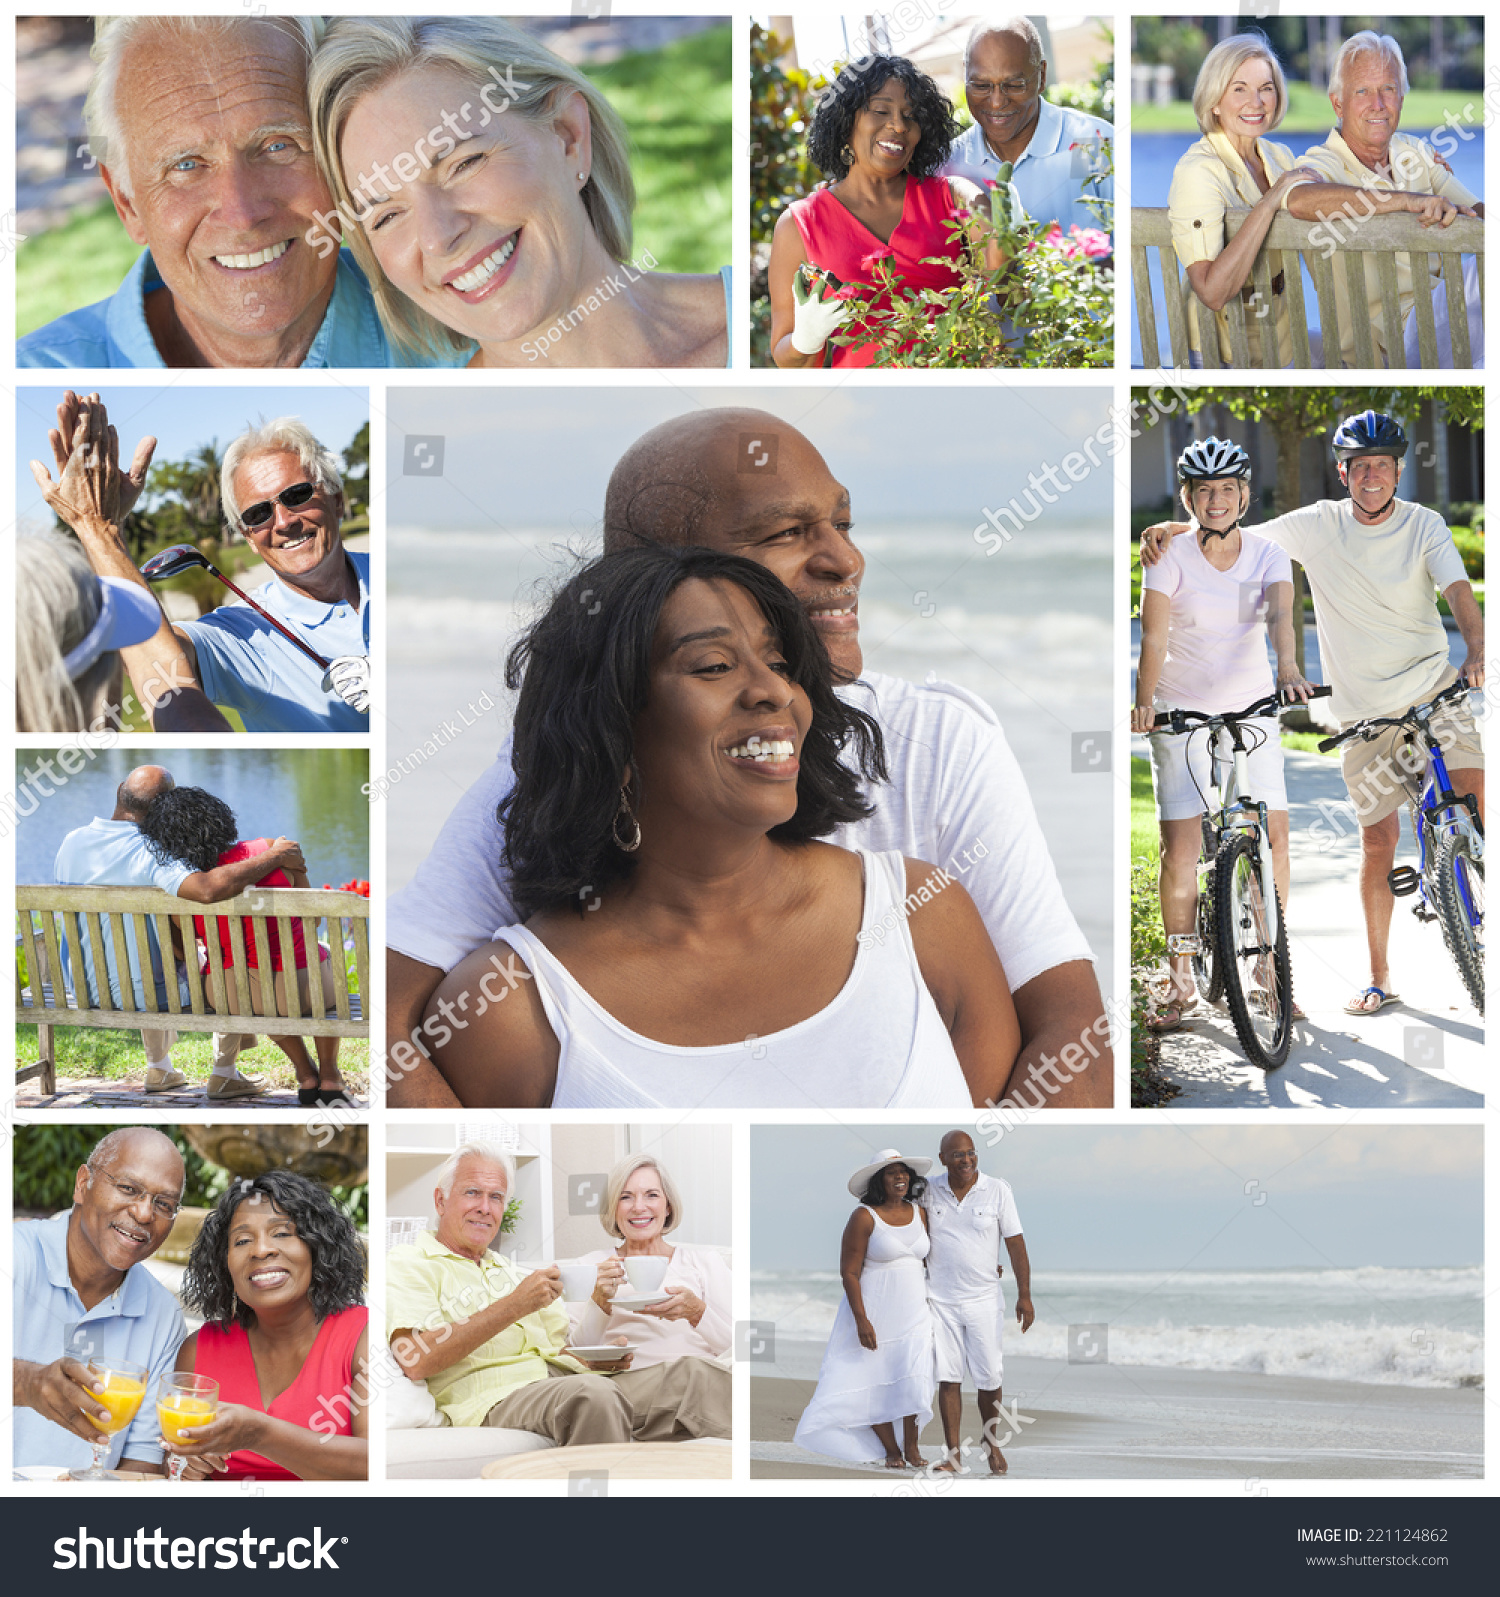 Woman Enjoying At Beach Stock Image Image Of Pleasure: Montage Of Happy Interracial Old Senior Man Woman Couples